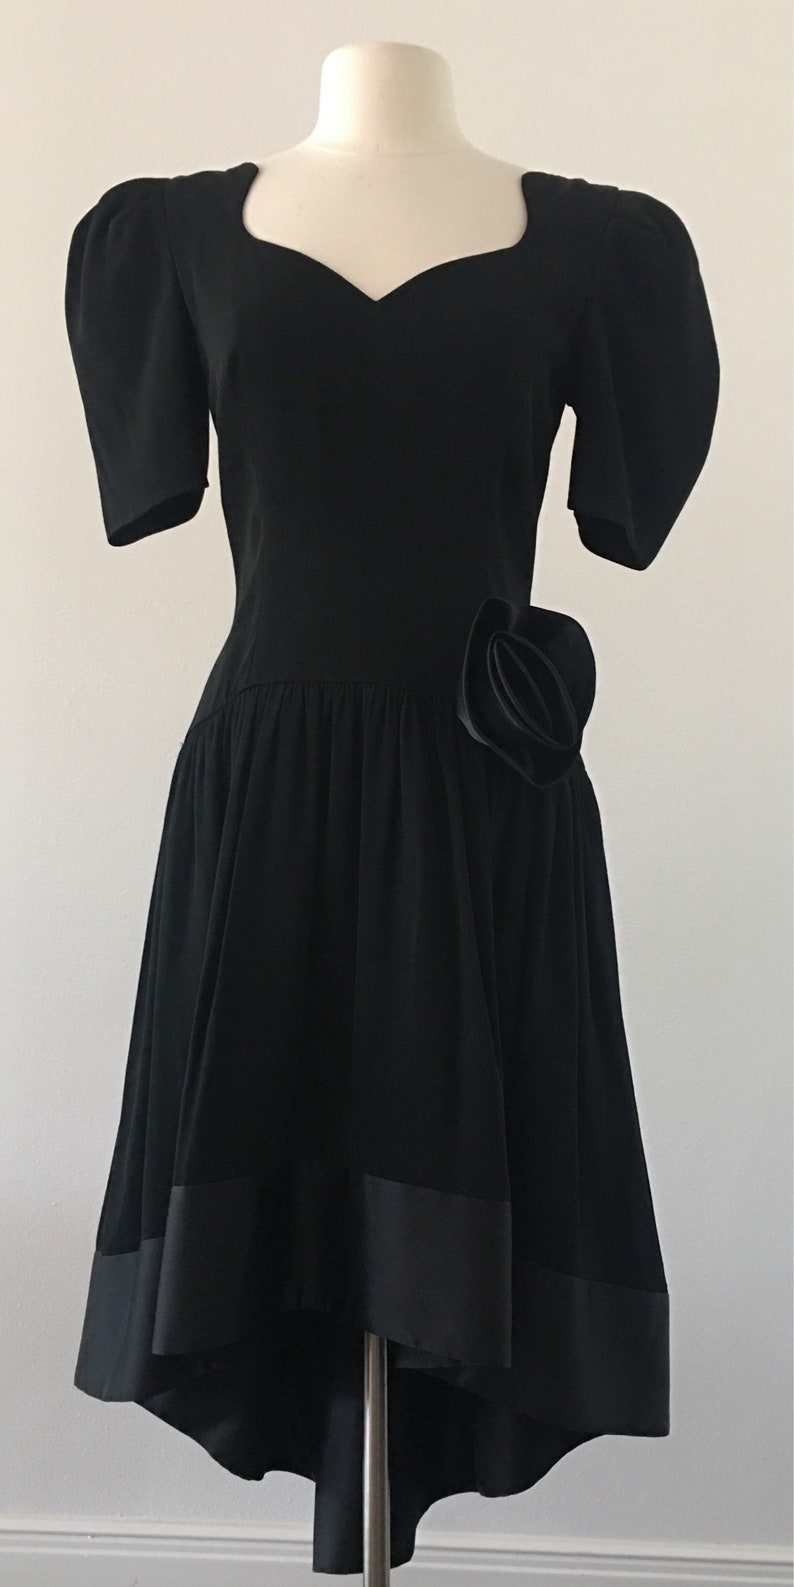 4e80a7eb091 Little Black Dress by Morton Myles for the Warrens Saks Fifth